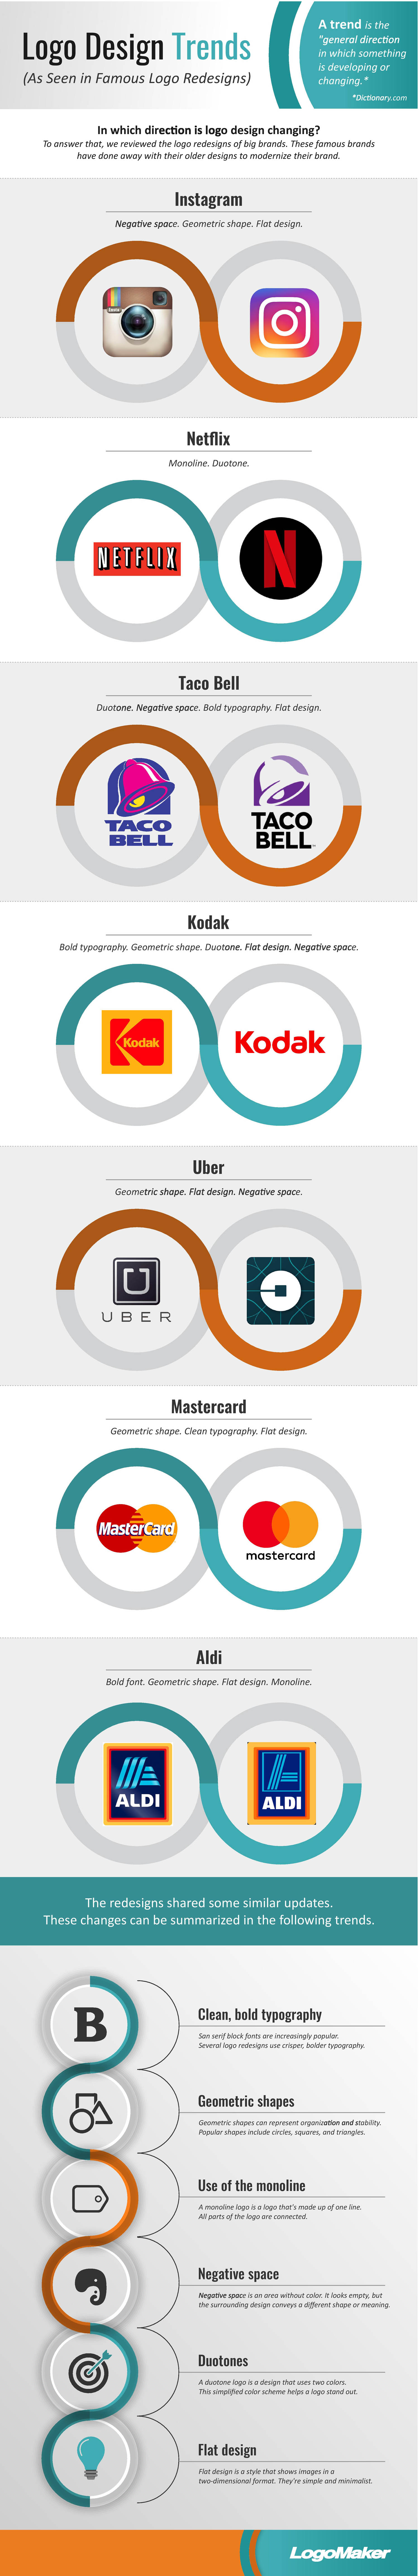 Logo Design Trends: As Seen in Famous Logo Redesigns